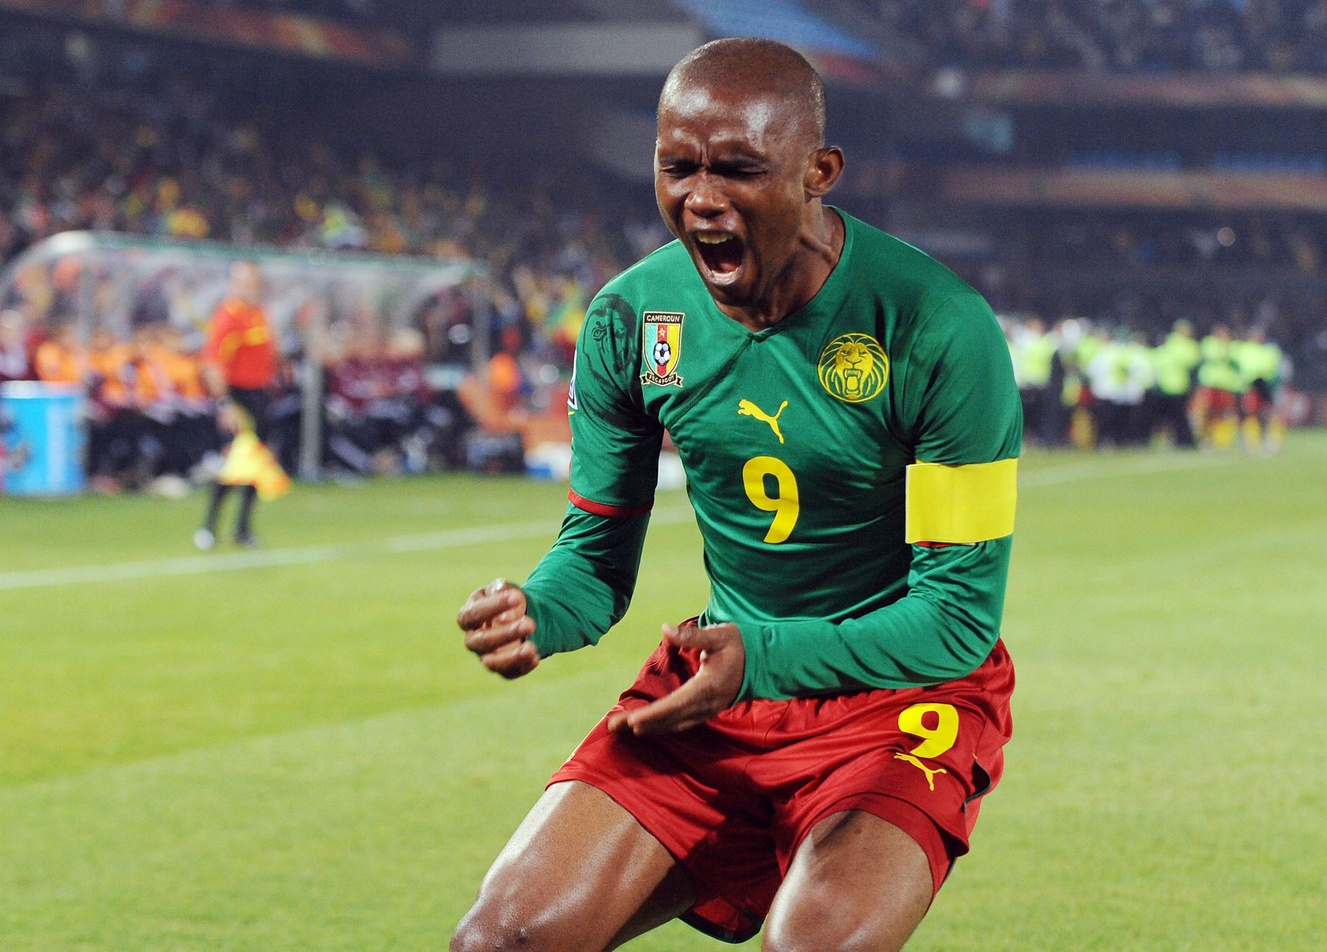 'Taribo West, one of the toughest defenders I ever faced' – Eto'o